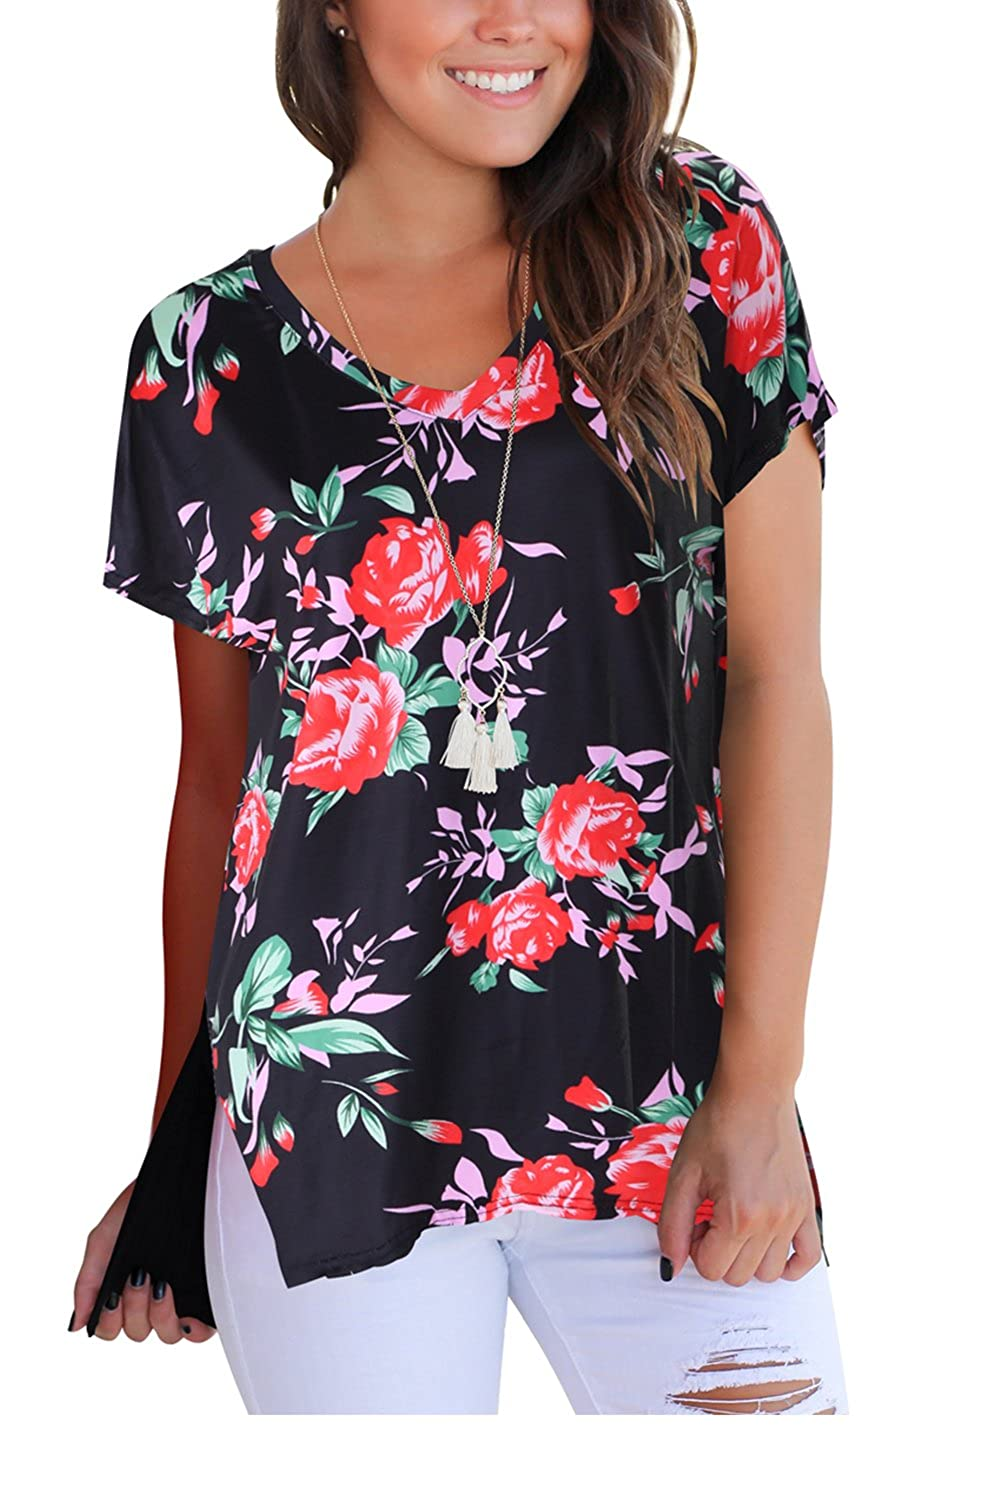 42bc095a91675 Casual and Chic Style,Short Sleeve,V Neck,Floral Print,Camo Print,Rose  Print,Stretch,Loose Fit,High Low Details.